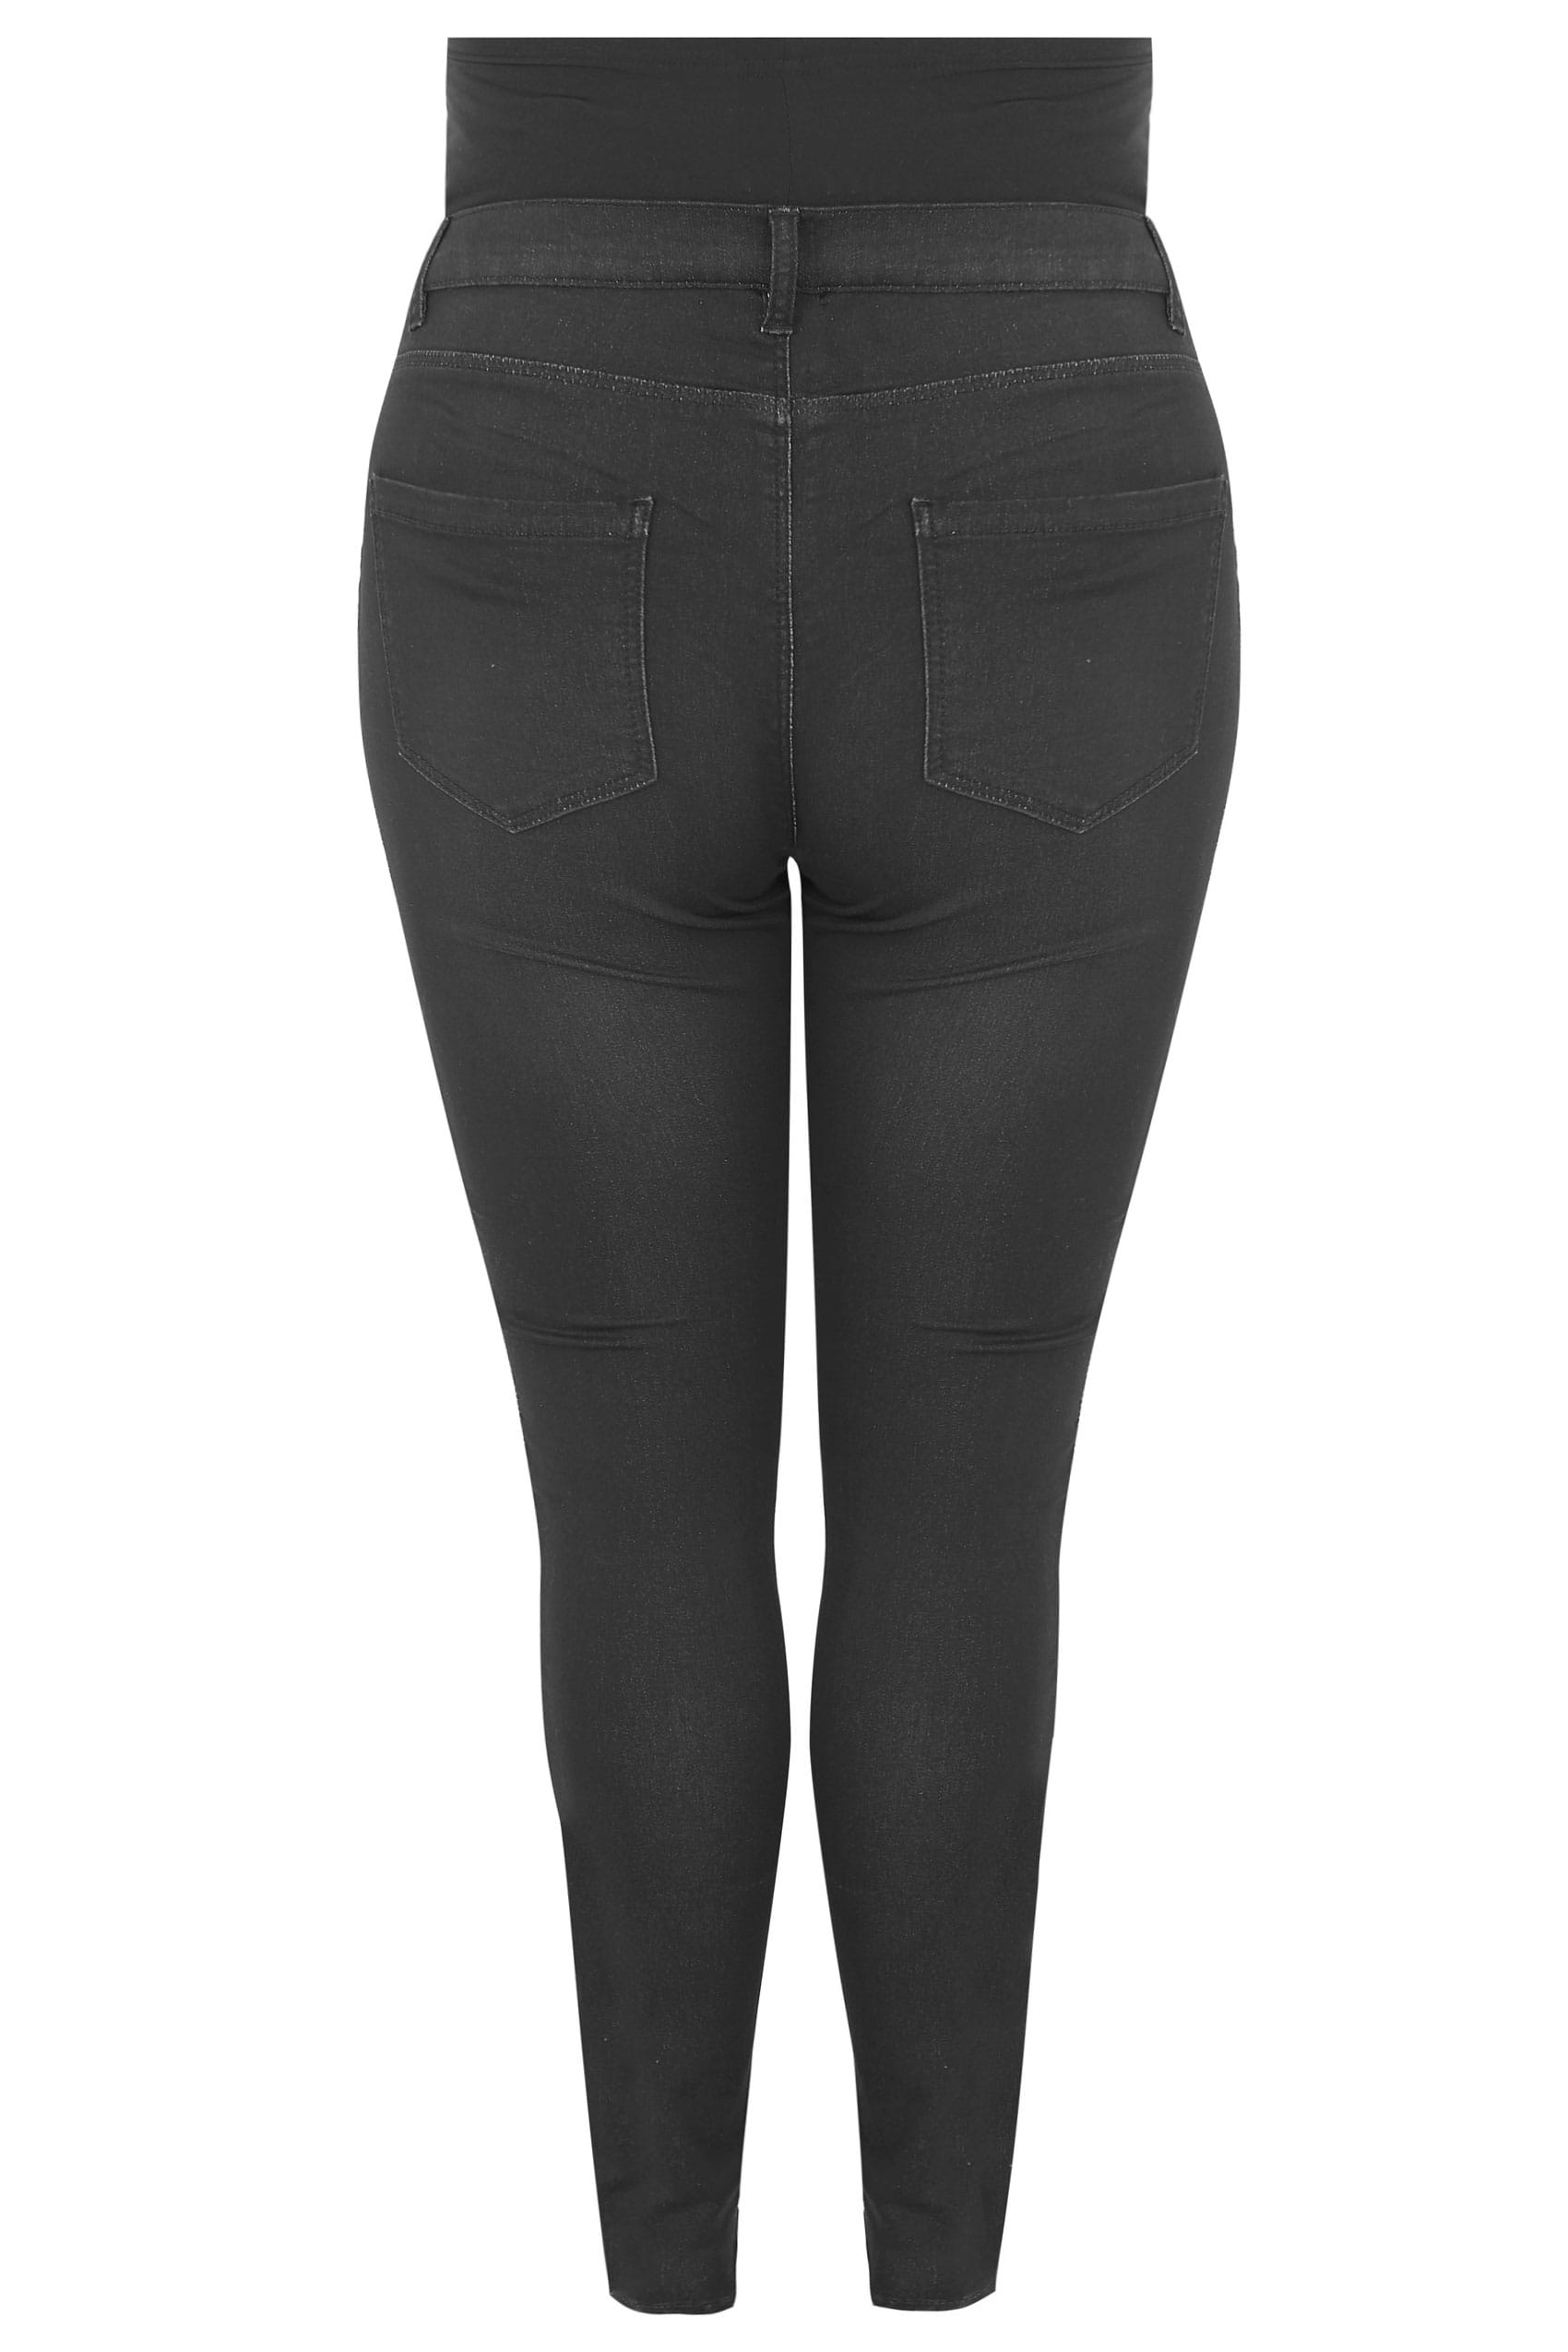 8b9586054038c BUMP IT UP MATERNITY Black Super Stretch Skinny Jeggings With Comfort Panel